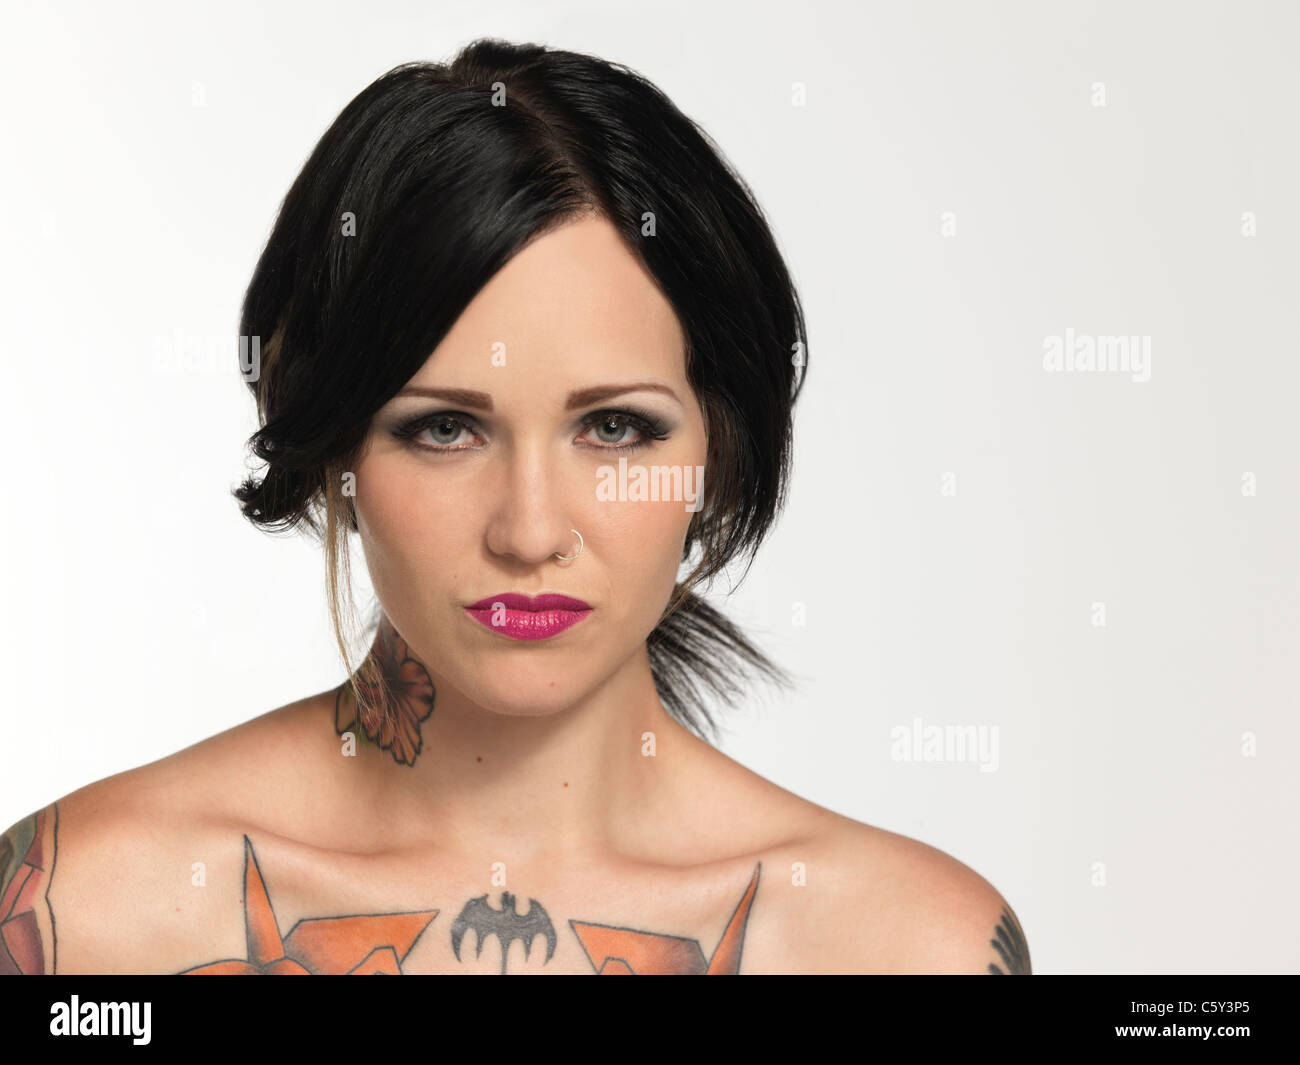 Portrait of girl with tattoos Stock Photo